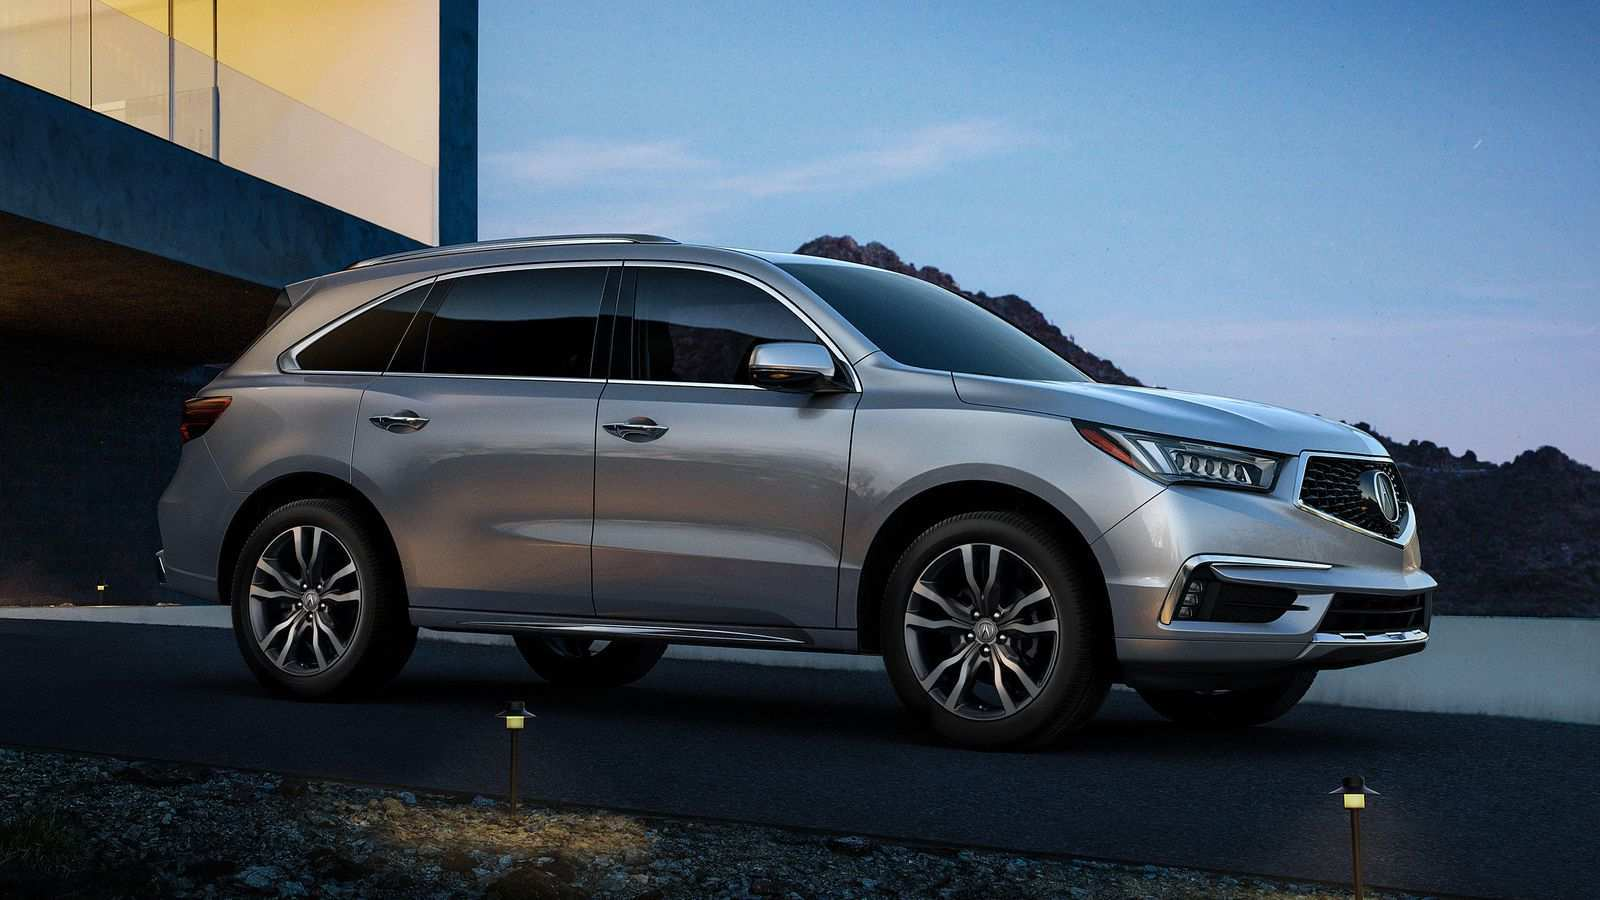 88 A 2020 Acura Mdx Rumors Style